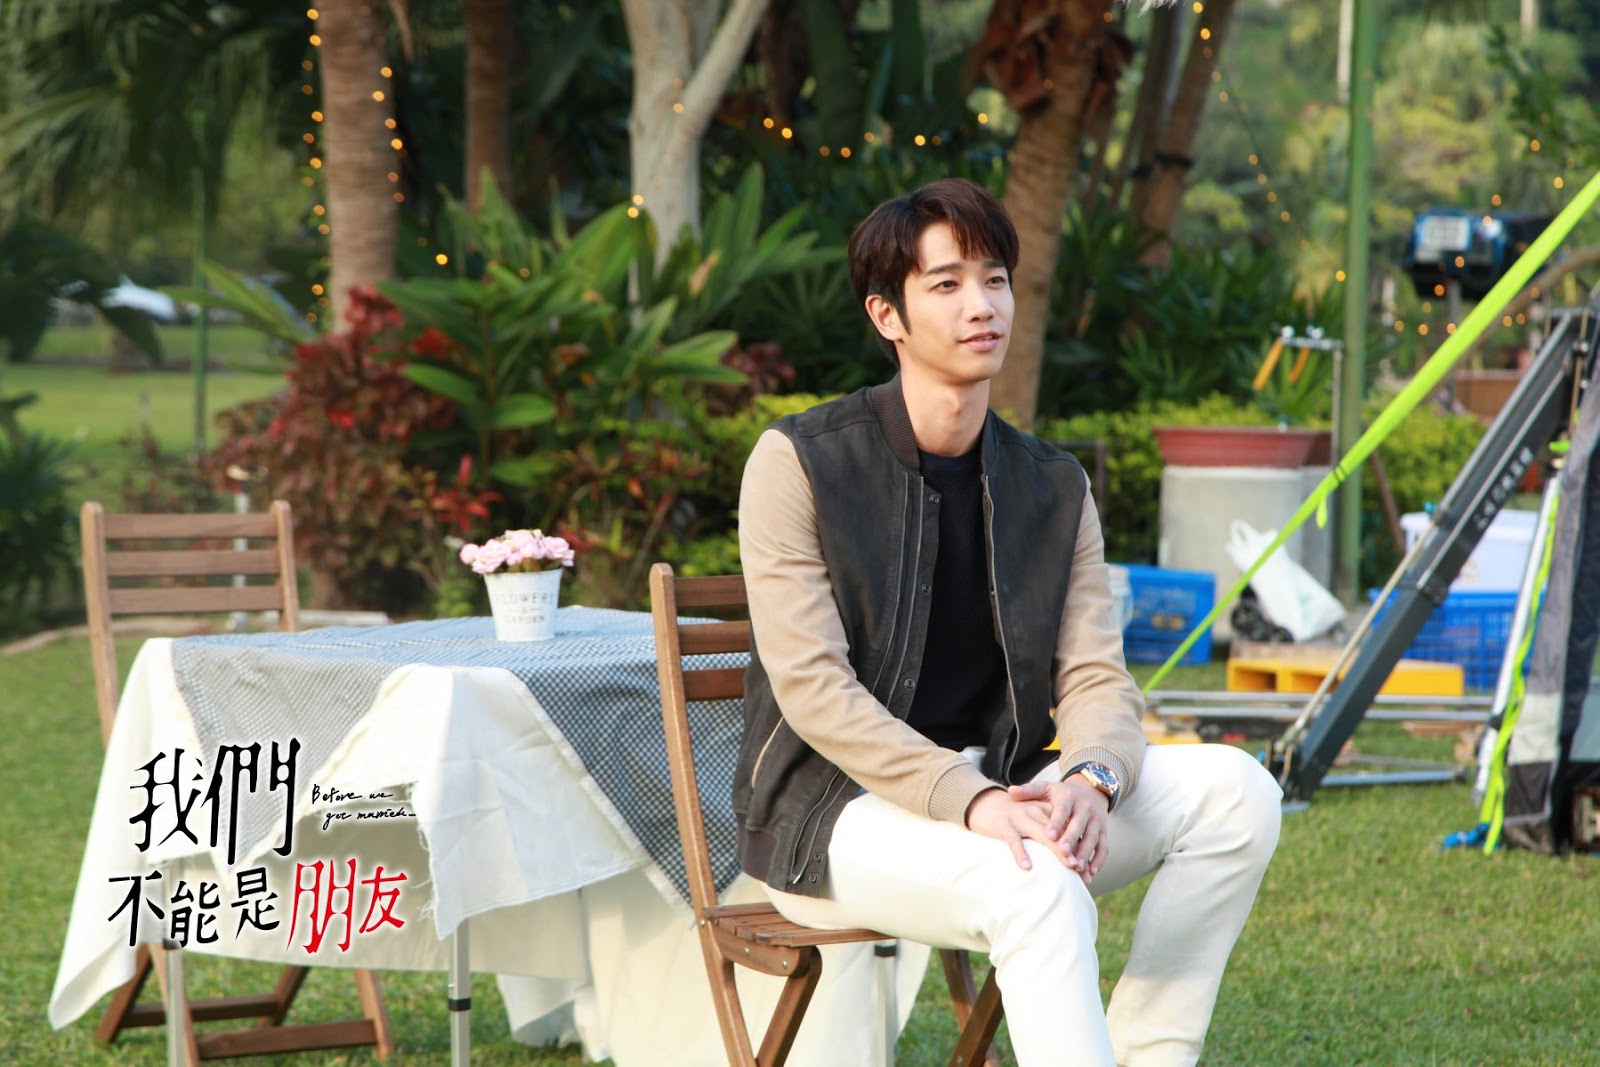 Puff Guo and Jasper Liu as Cheating Lovers in Before We Get